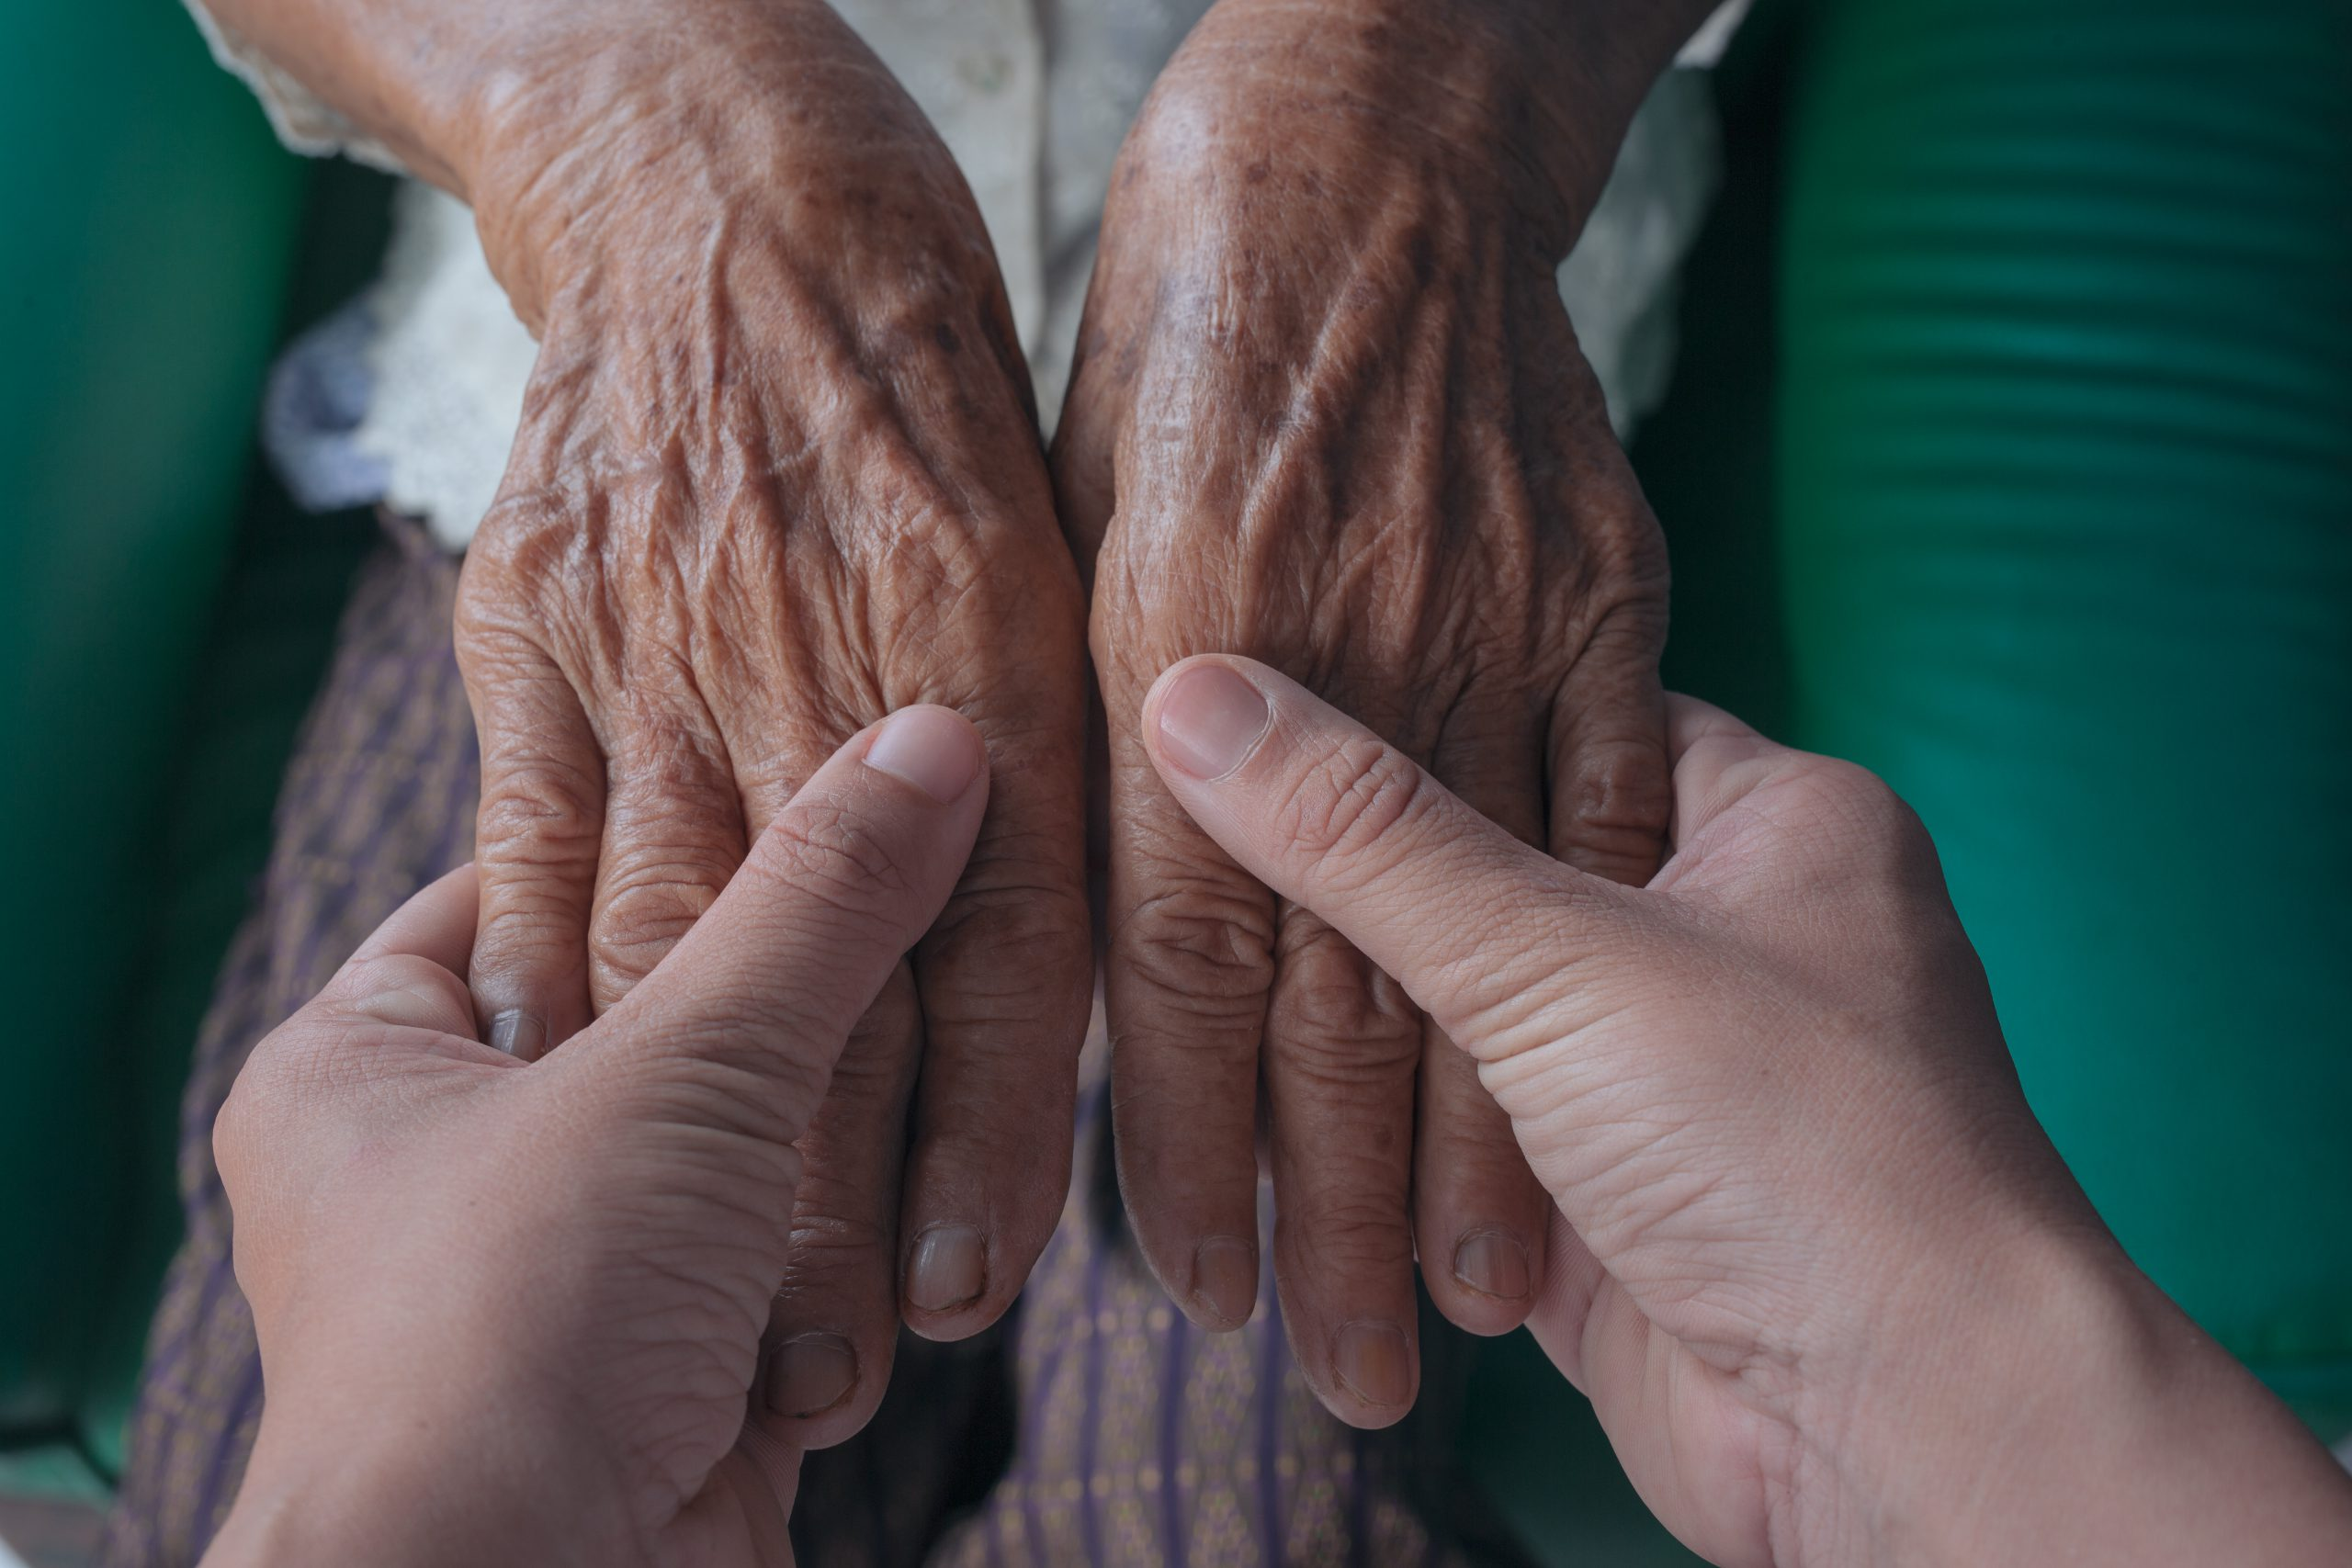 Holdimng patient hands by a Registered Nurse. MEDIjobs